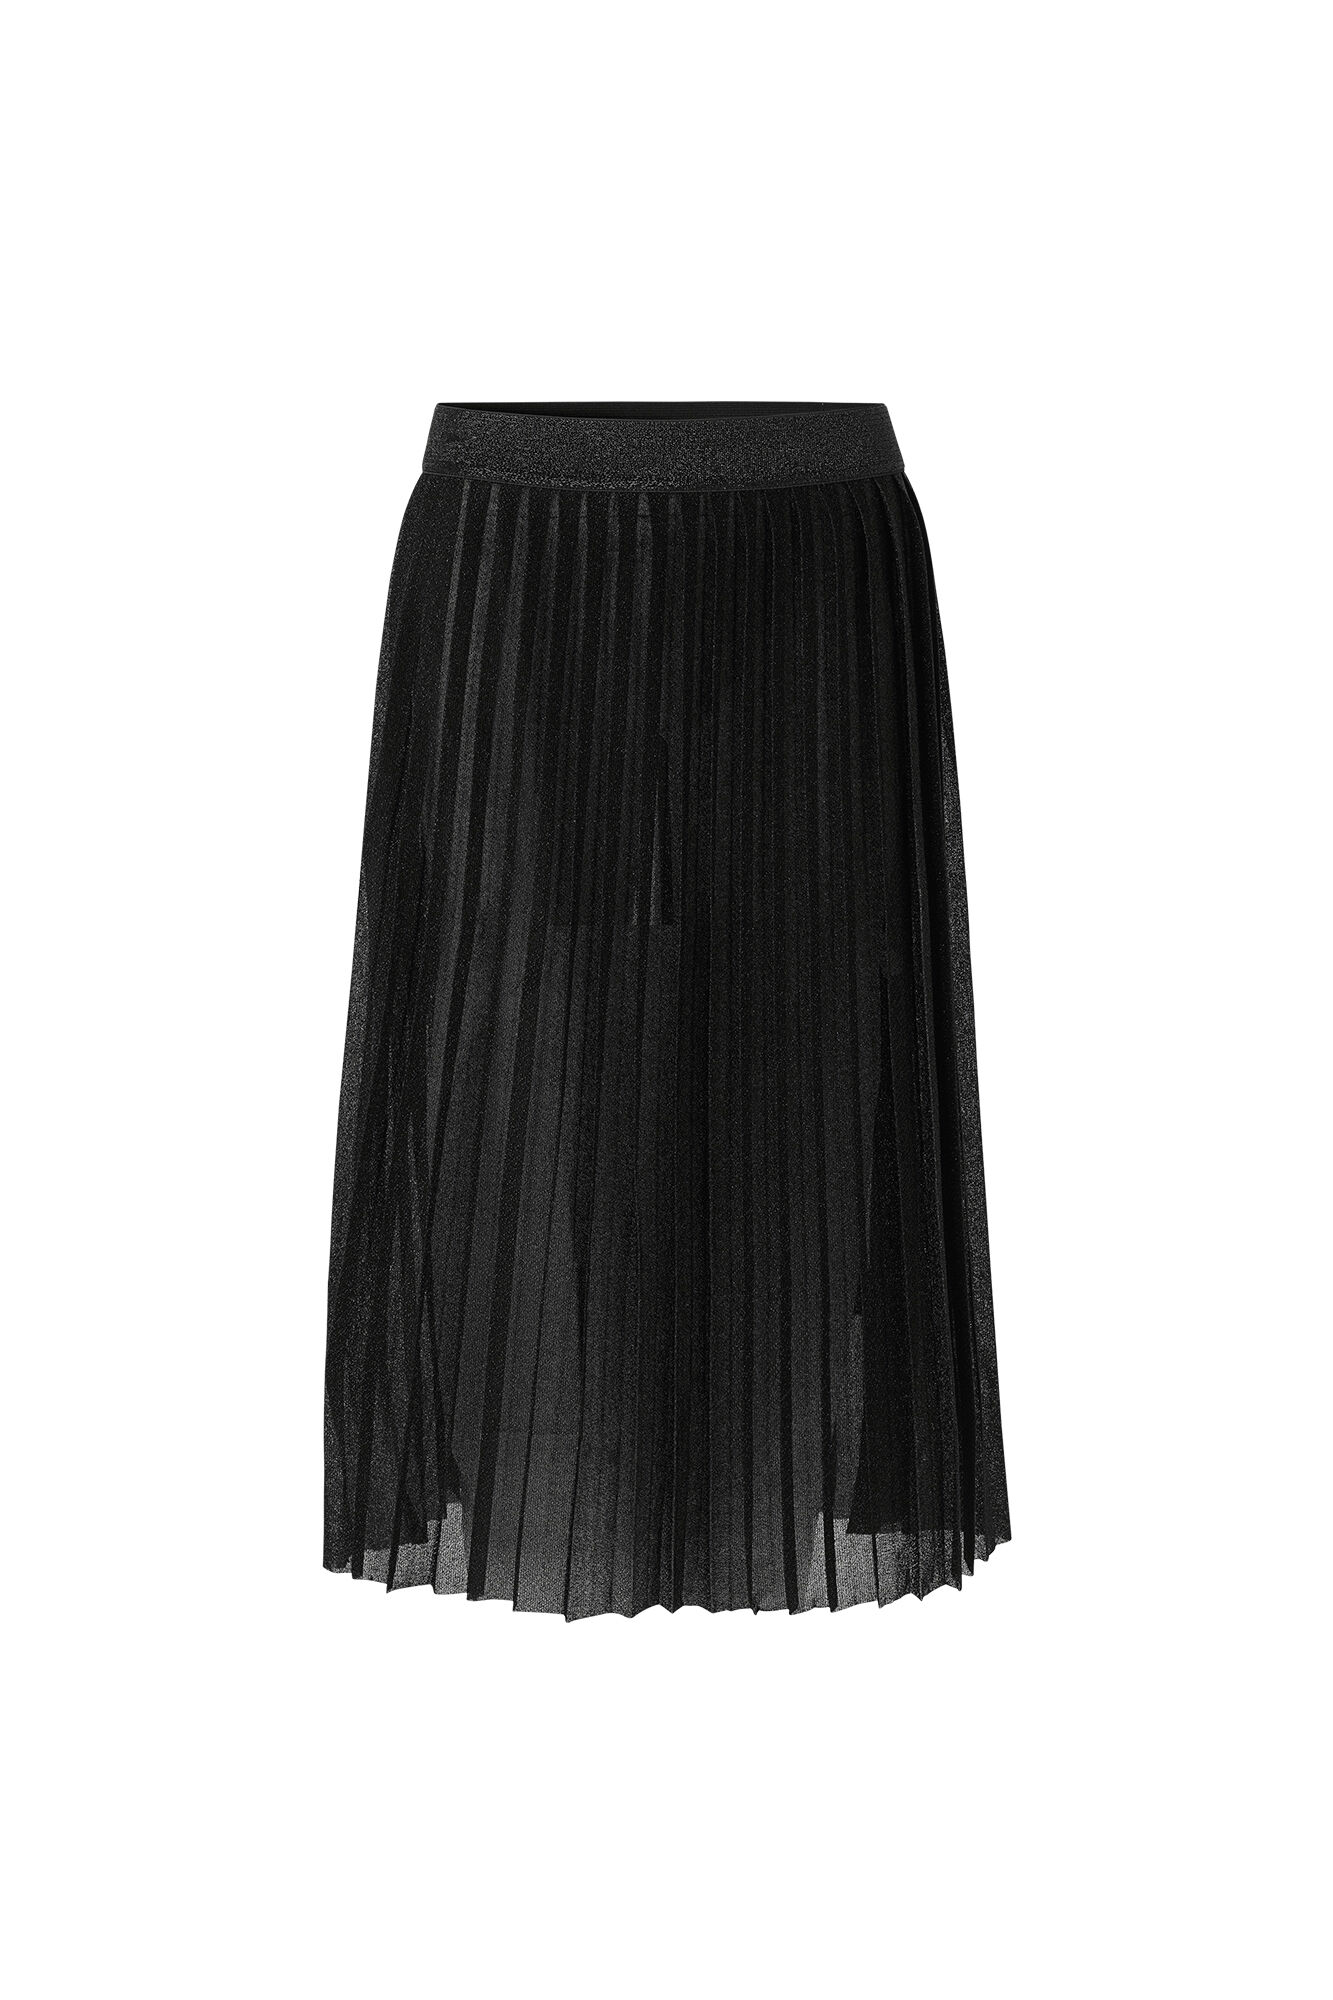 ENBOOK SKIRT 5930, BLACK GLITTER